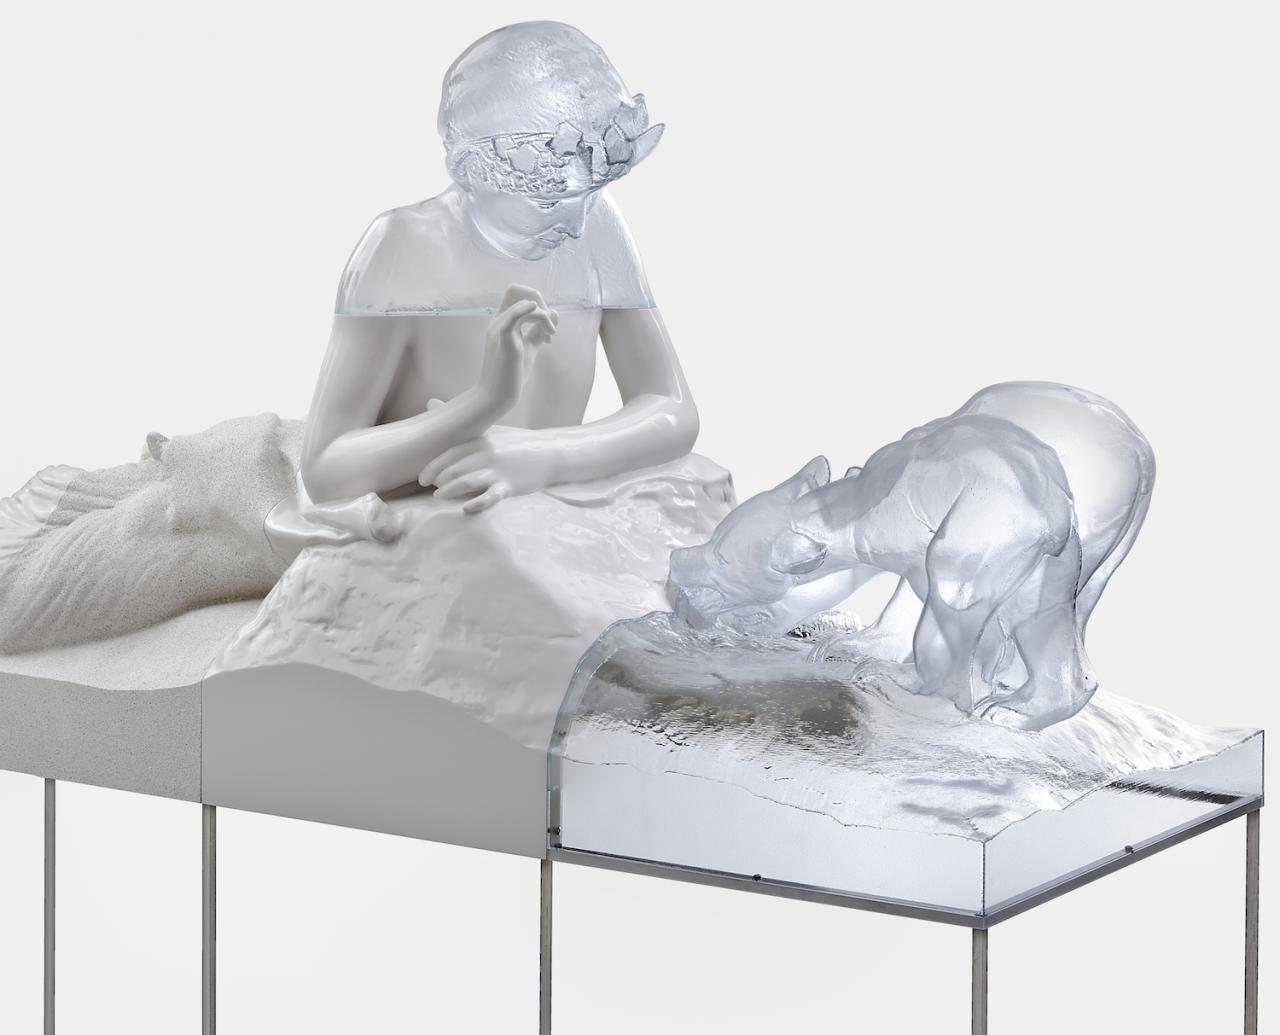 Pan with Bears (2017), Courtesy the artist, Metro Pictures, New York, and Tanya Leighton, Berlin